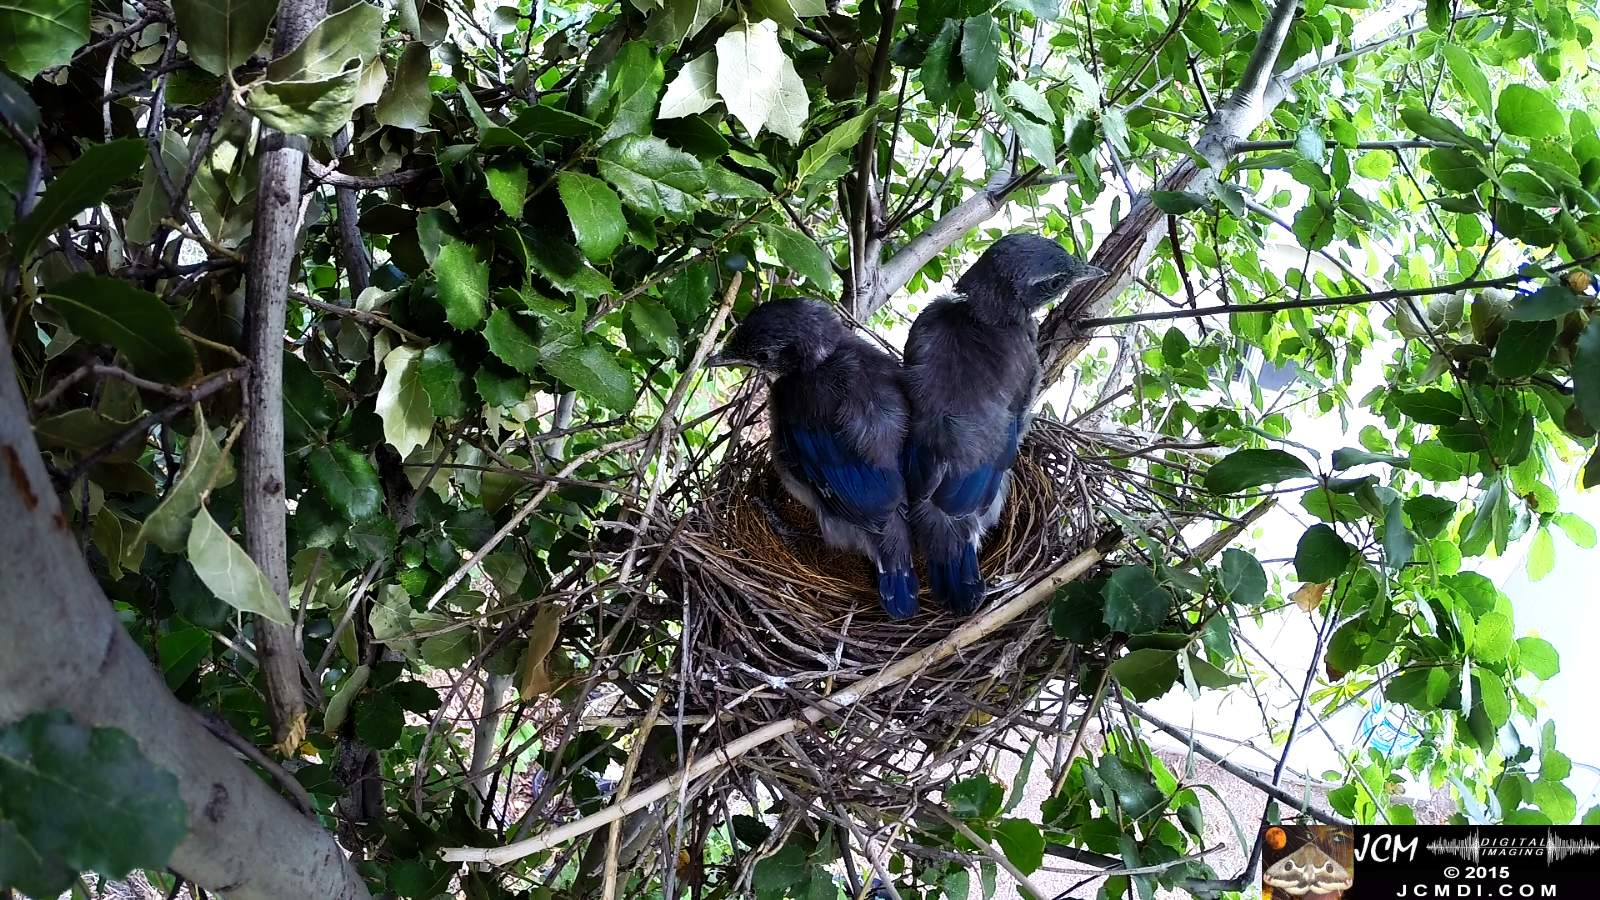 Scrub Jay Documentary chicks hanging out on nest edge back view (sirens)